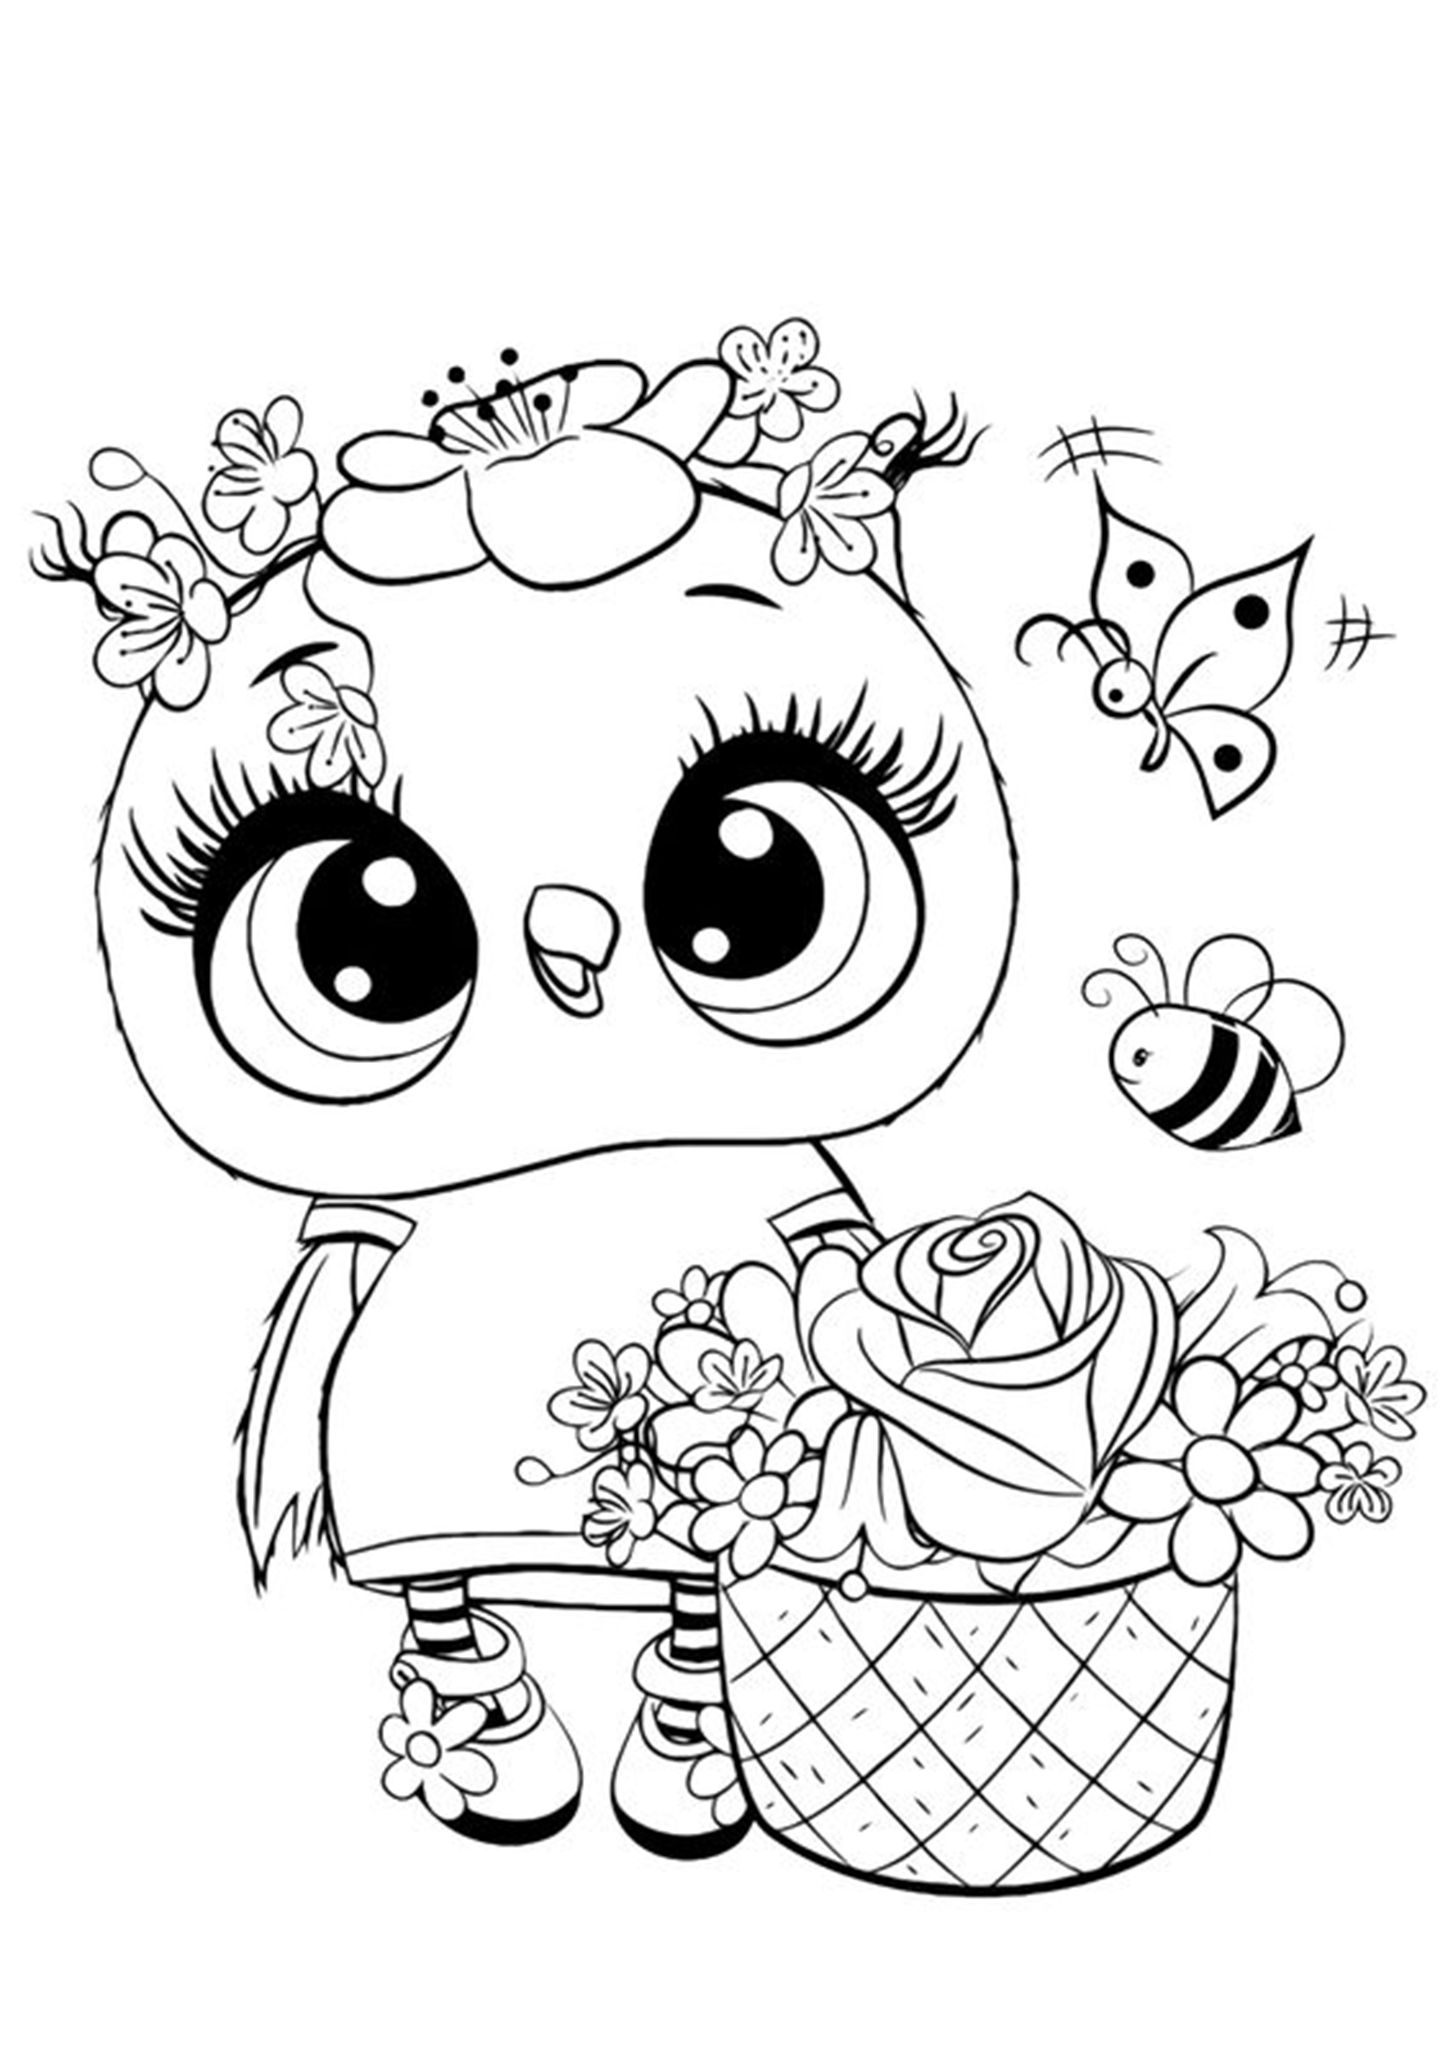 Free Easy To Print Owl Coloring Pages Owl Coloring Pages Animal Coloring Pages Unicorn Coloring Pages